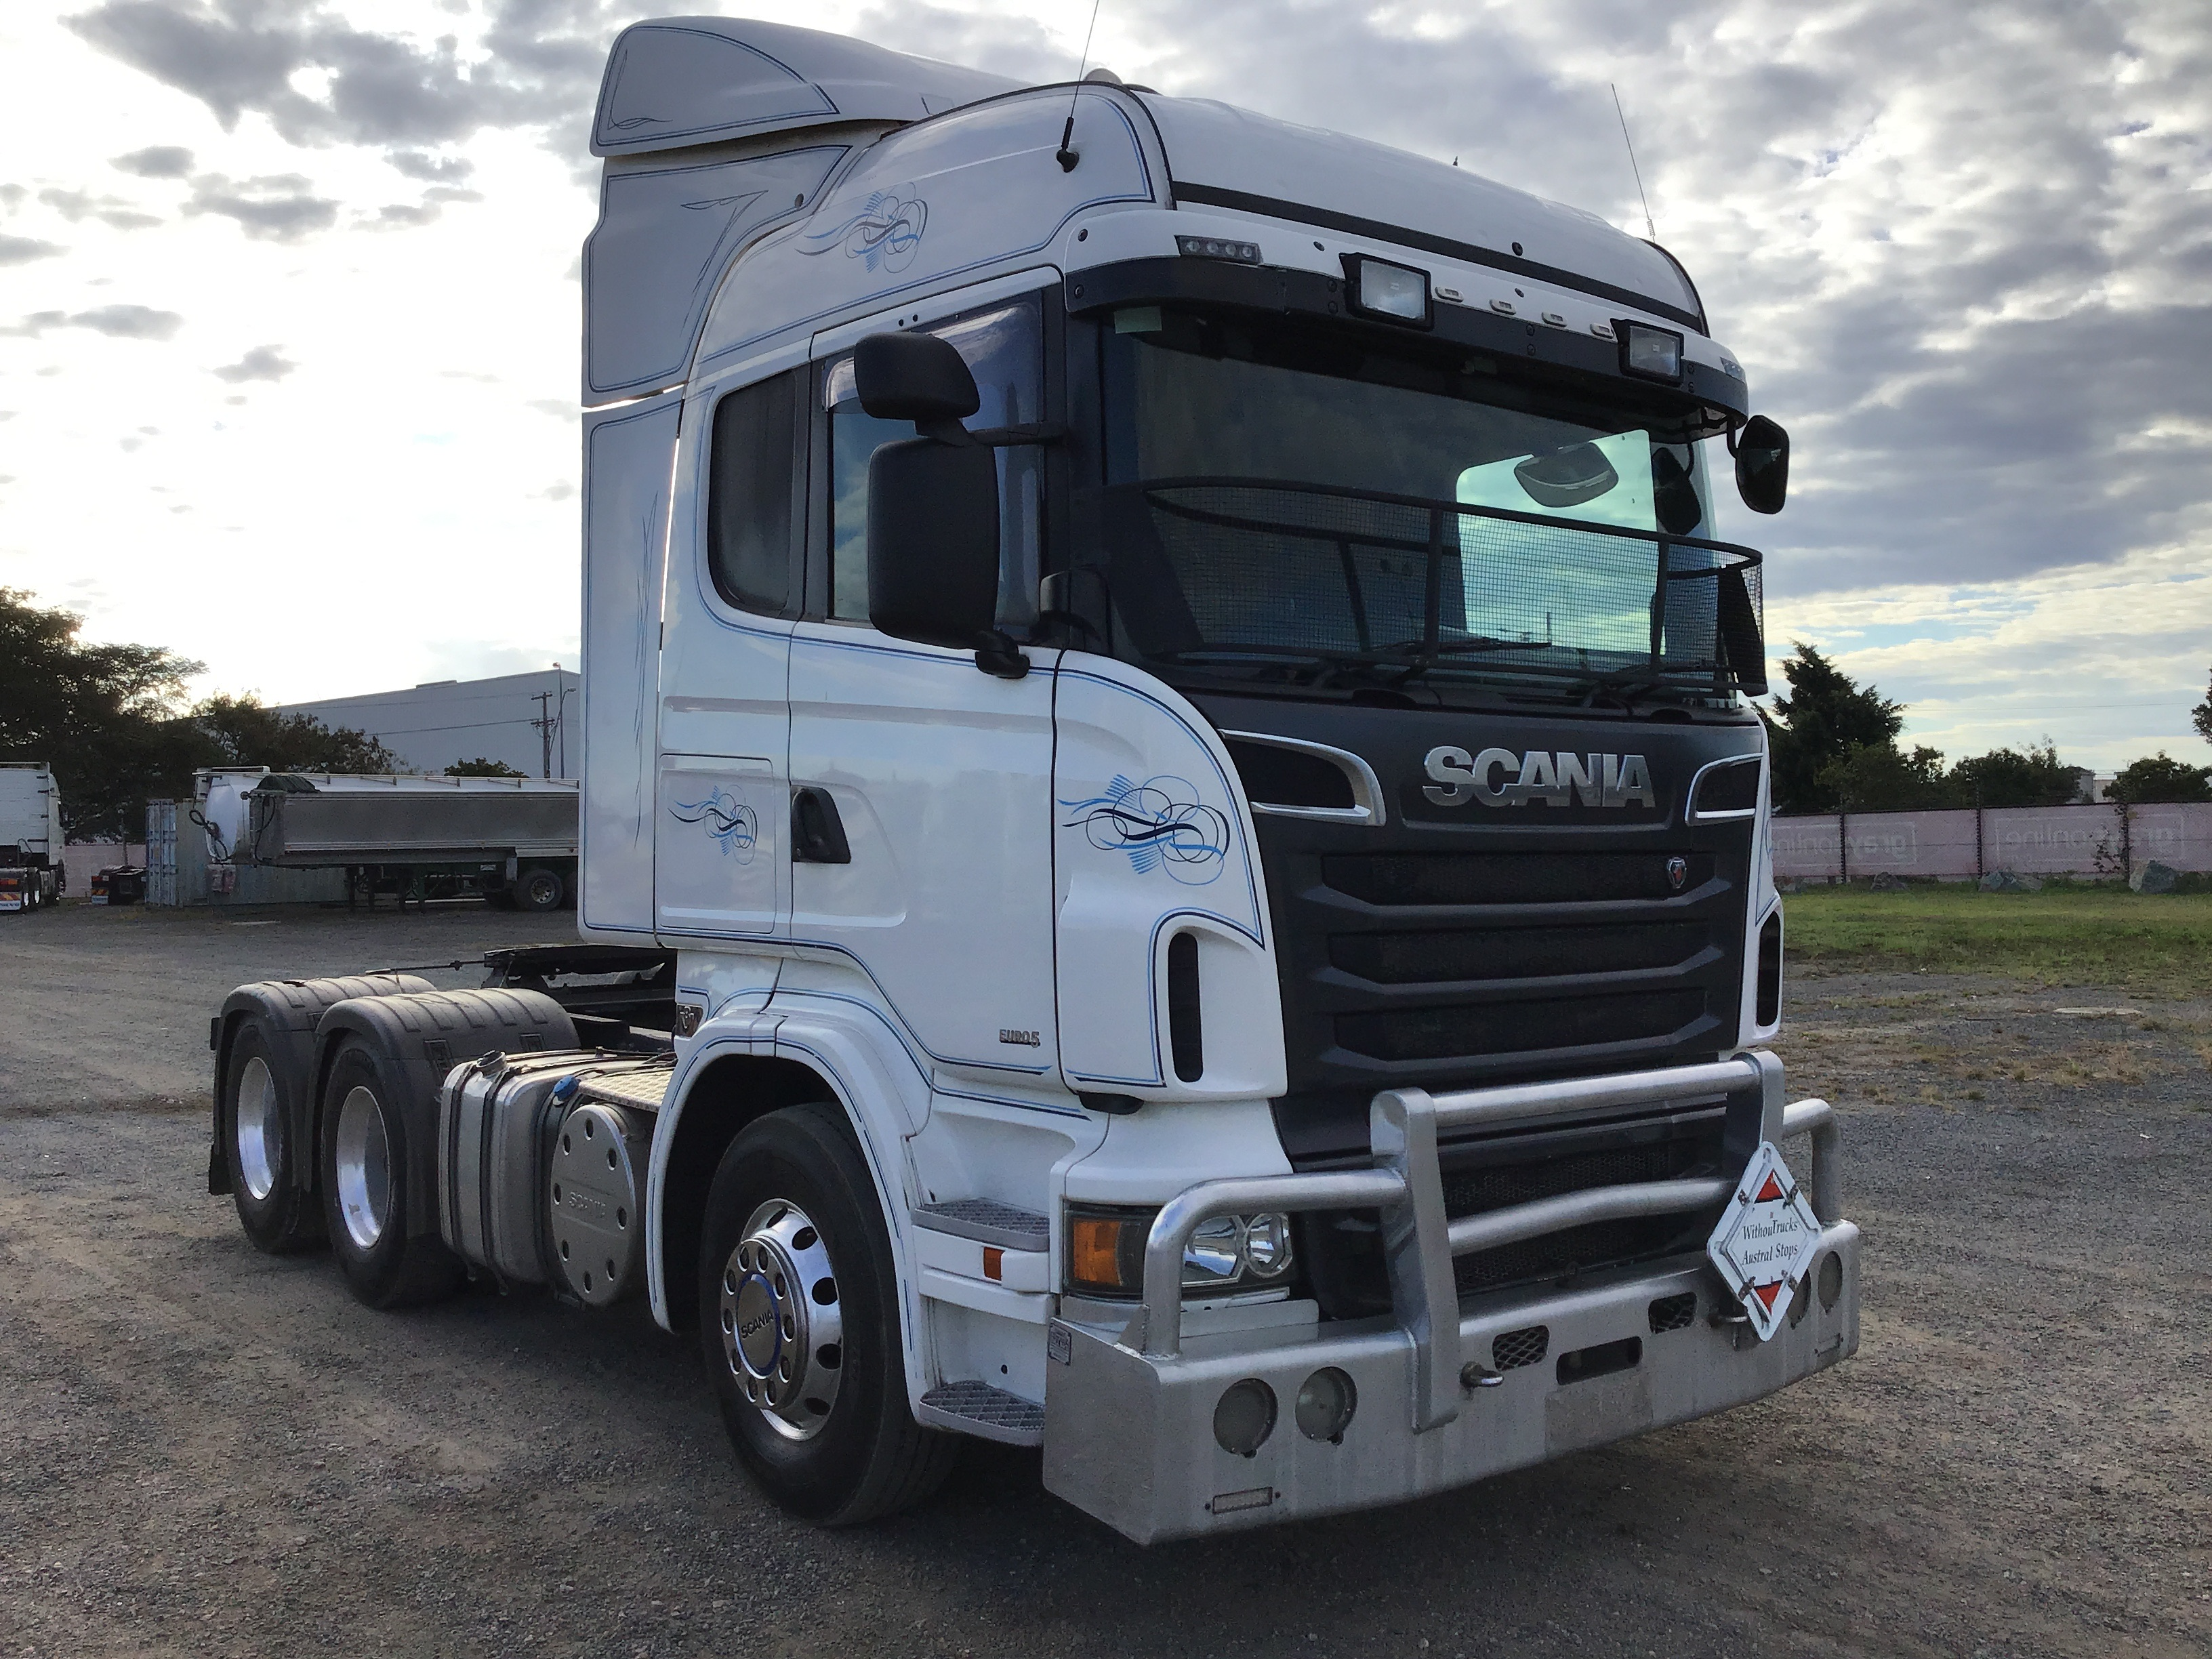 2013 Scania R620 6 x 4 Prime Mover Truck